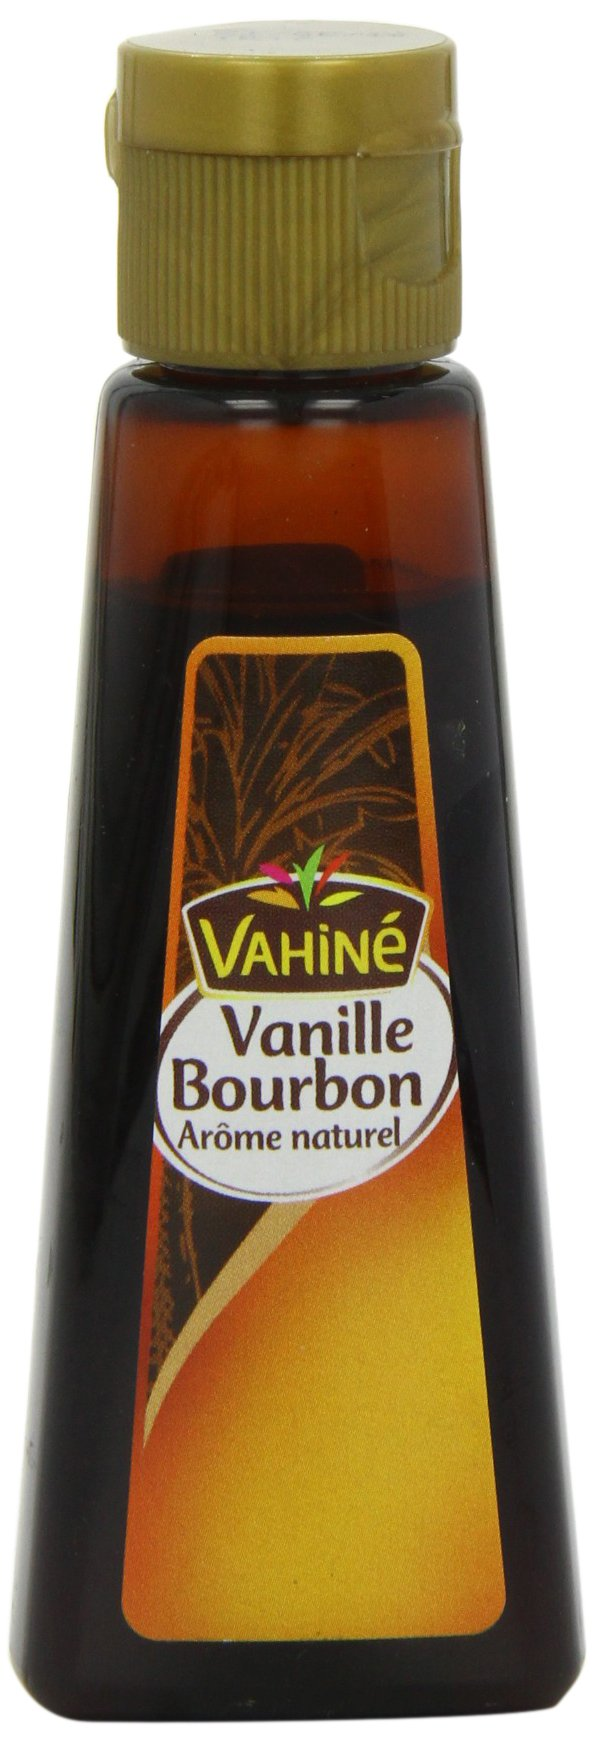 Vahine - All Natural Bourbon Vanilla Extract from France 1.69 Fl.oz 50ml